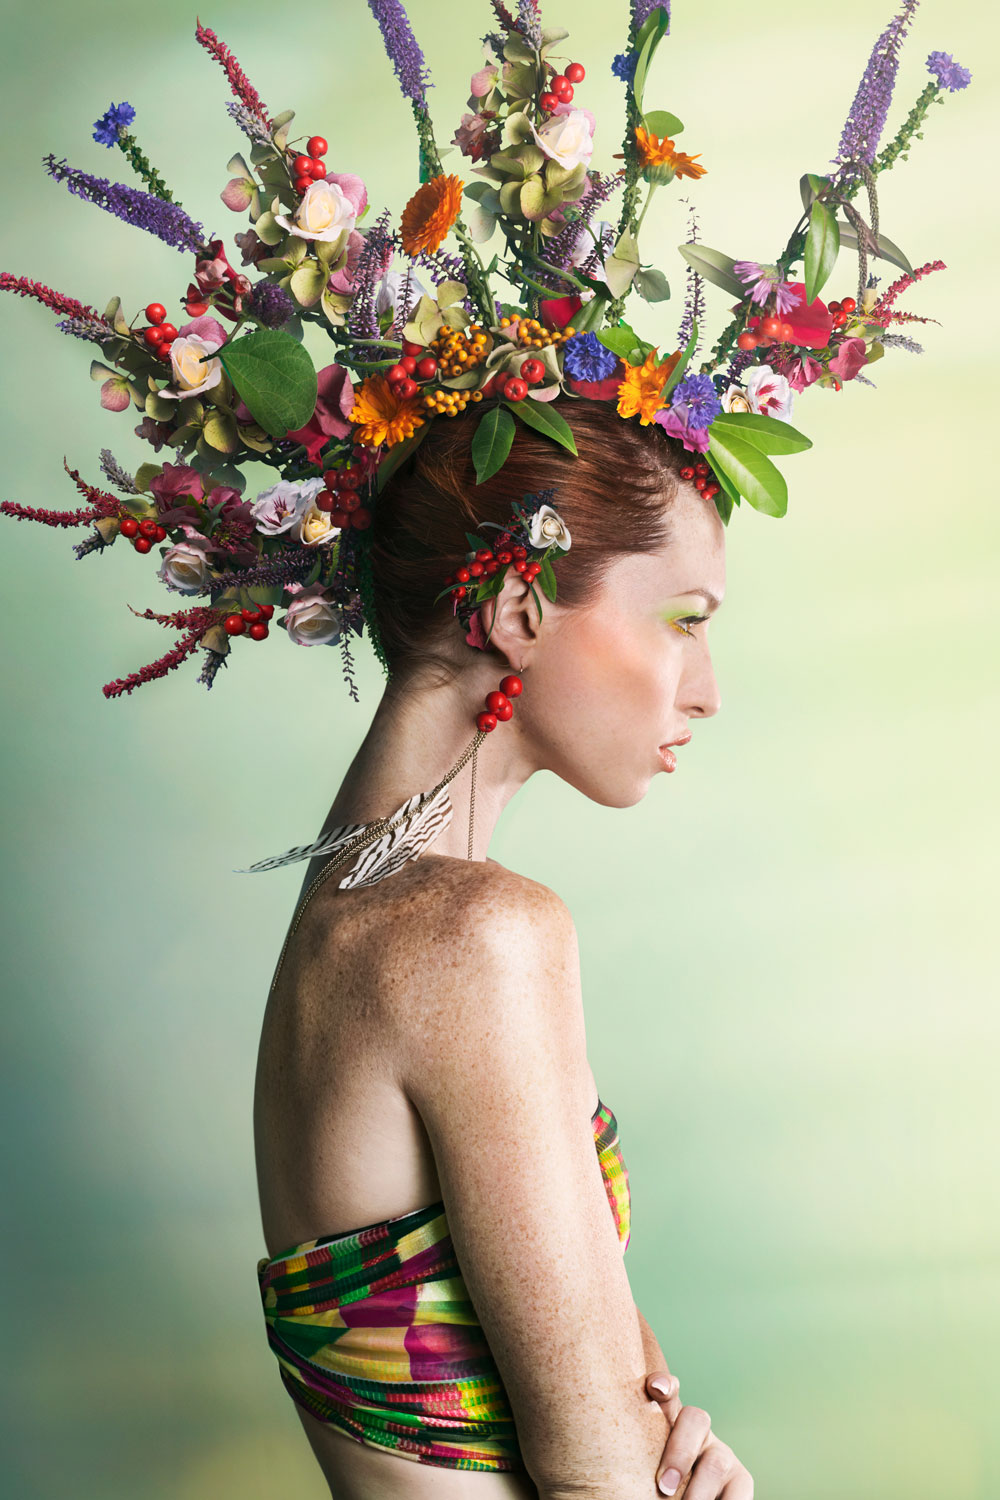 Woman floral fashion